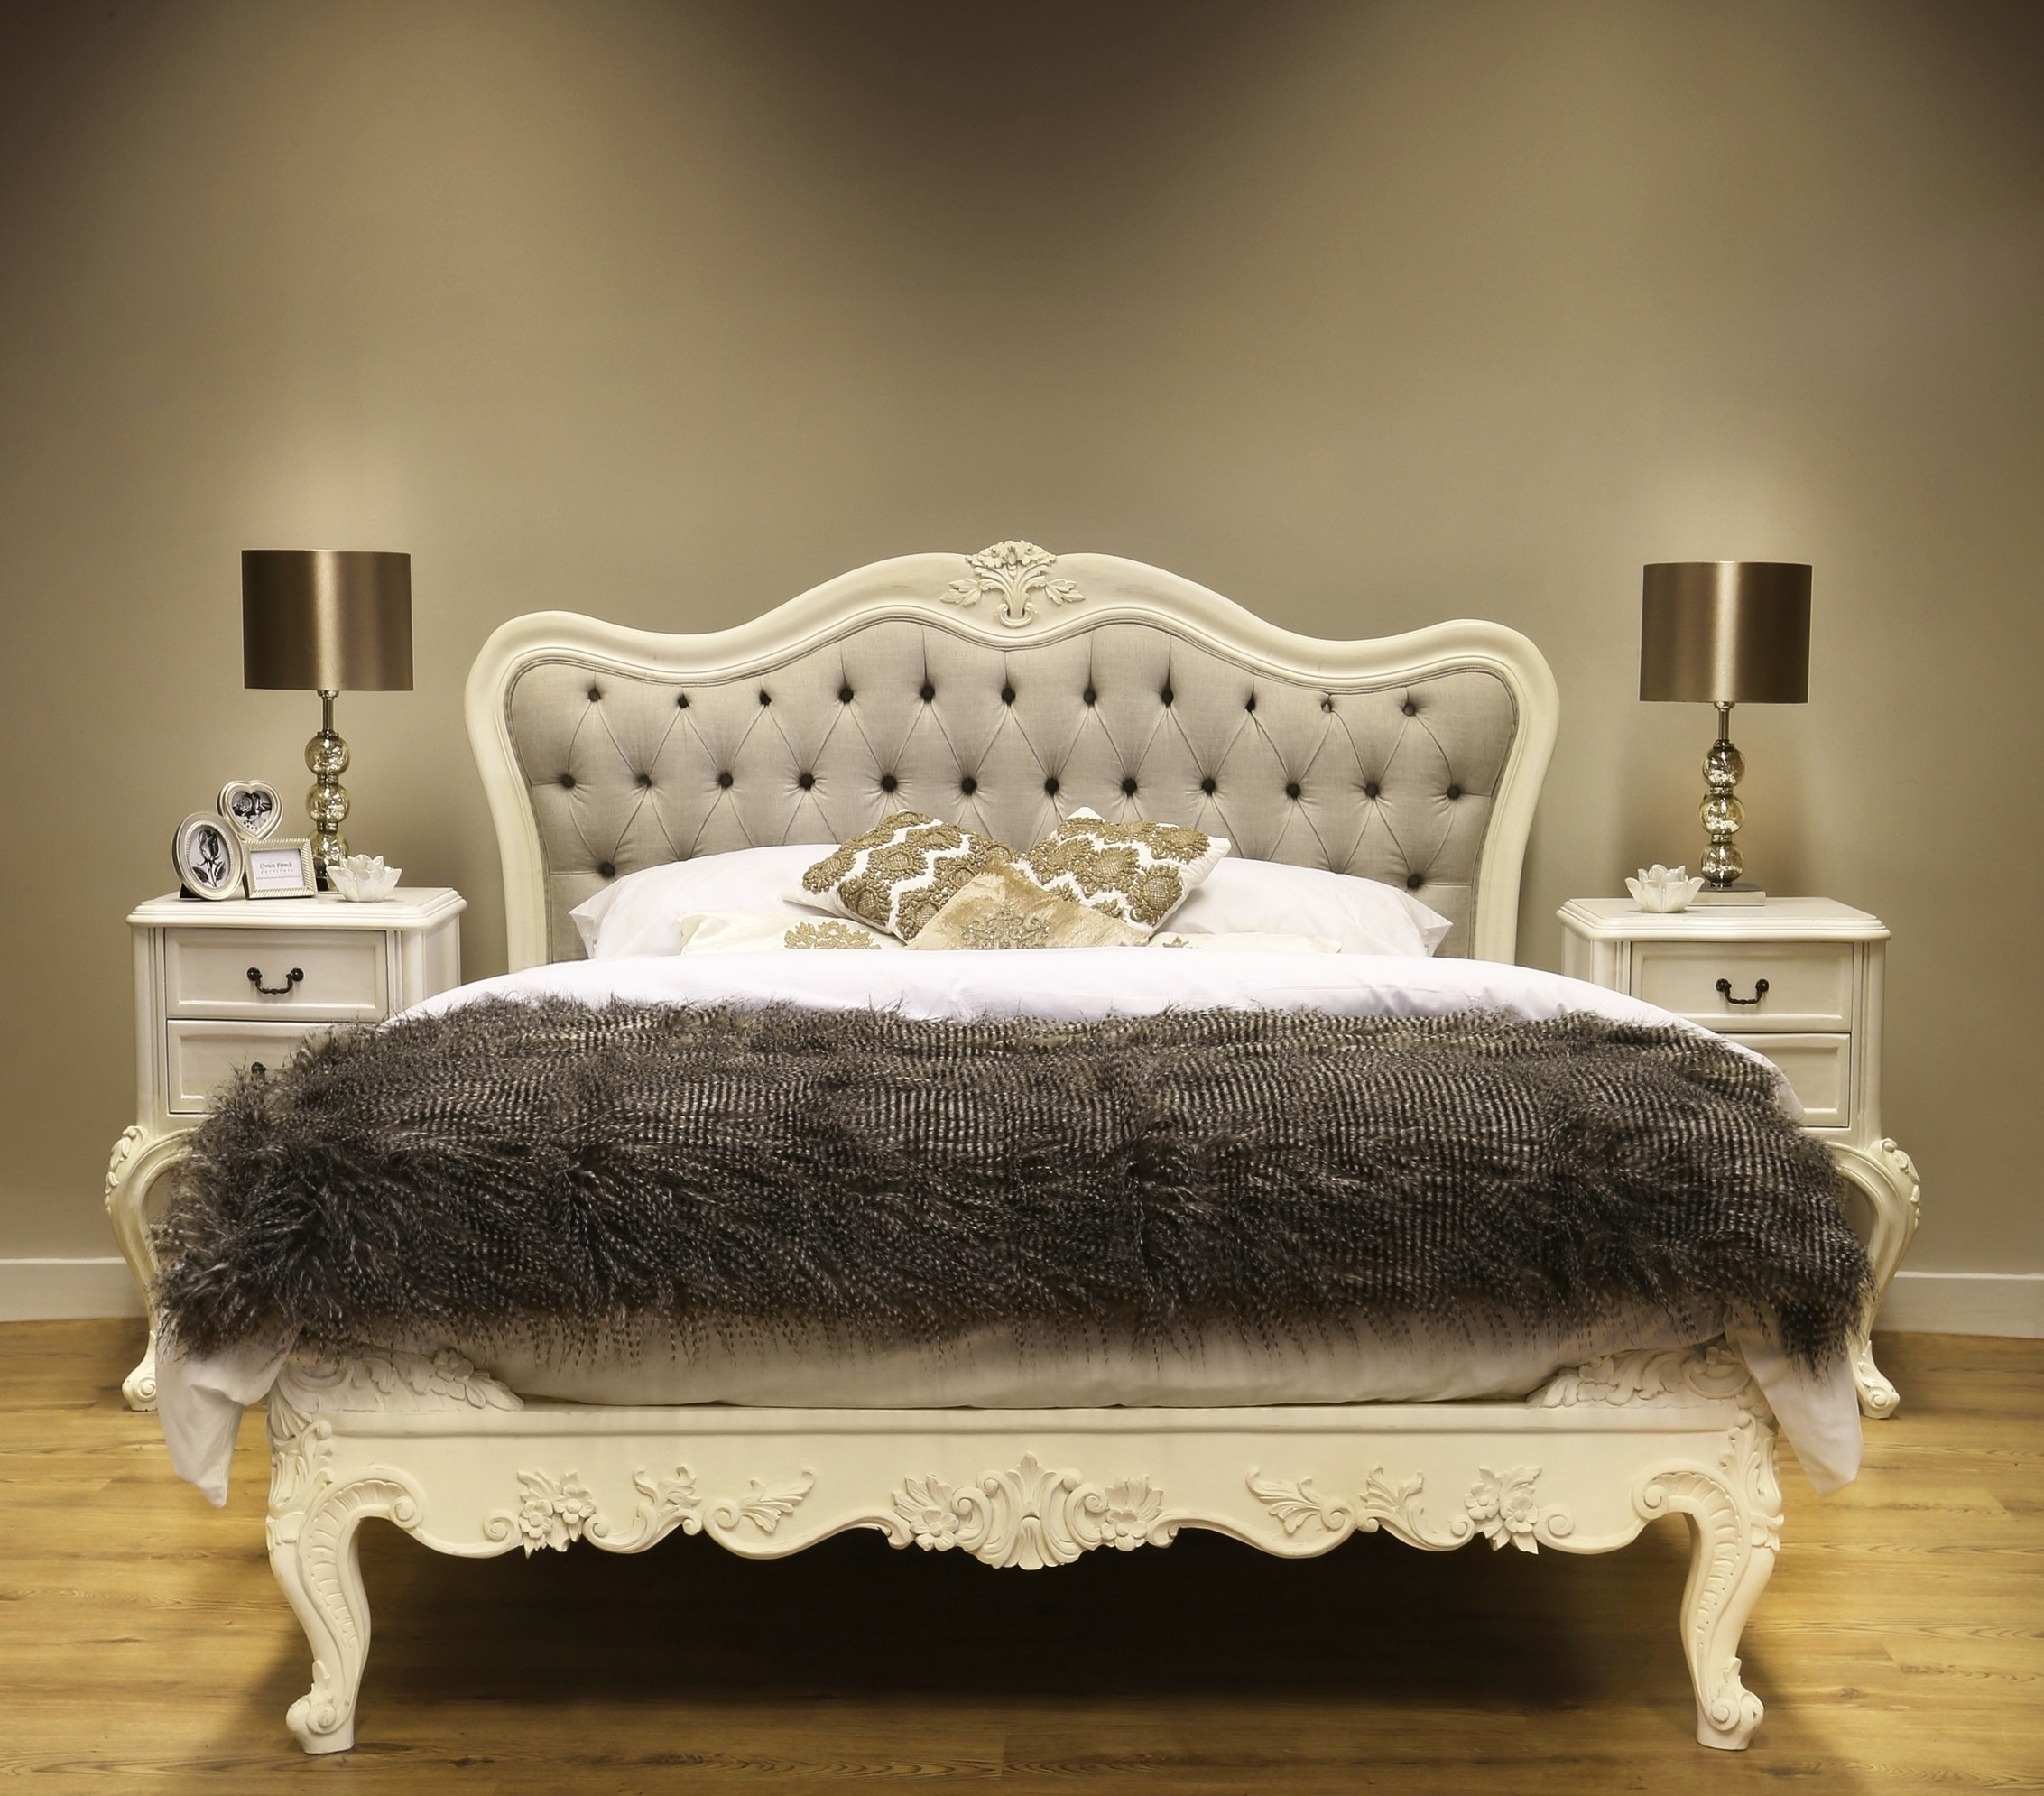 Sophia Button Upholstered French Bed French Bedroom Furniture French Beds French Furniture